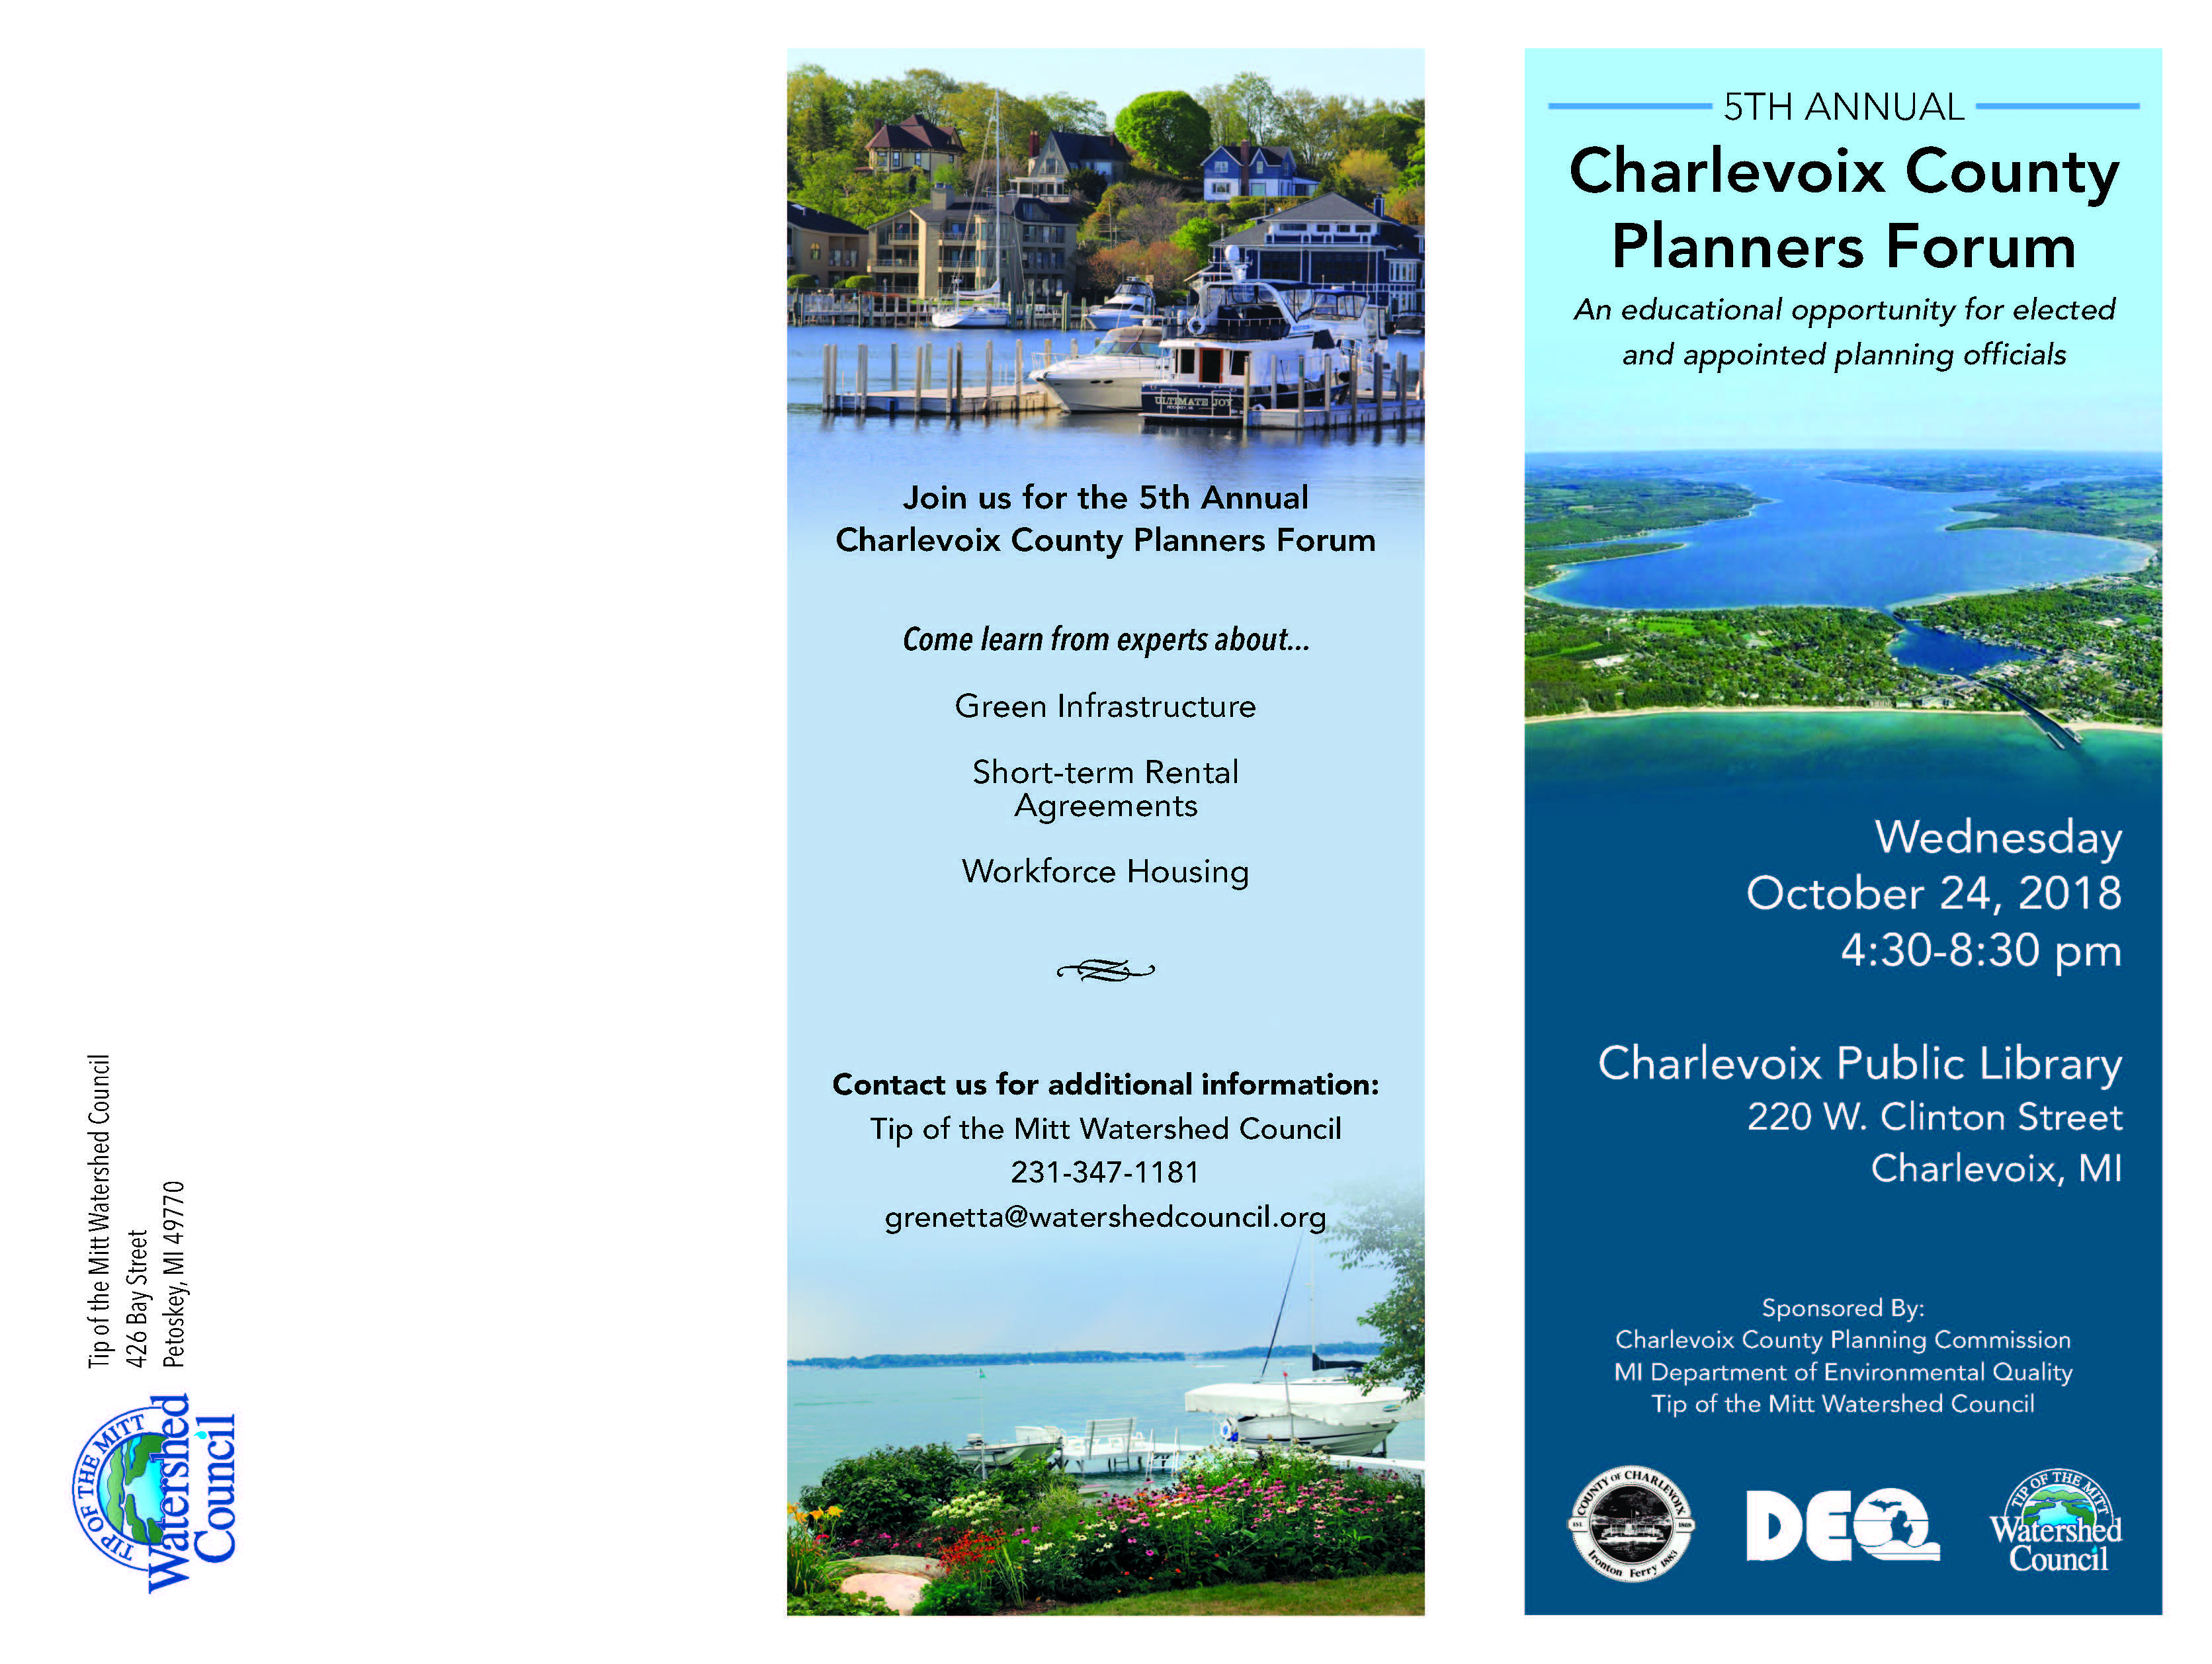 Charlevoix Co Planners Forum Brochure 10-24-18_Page_1